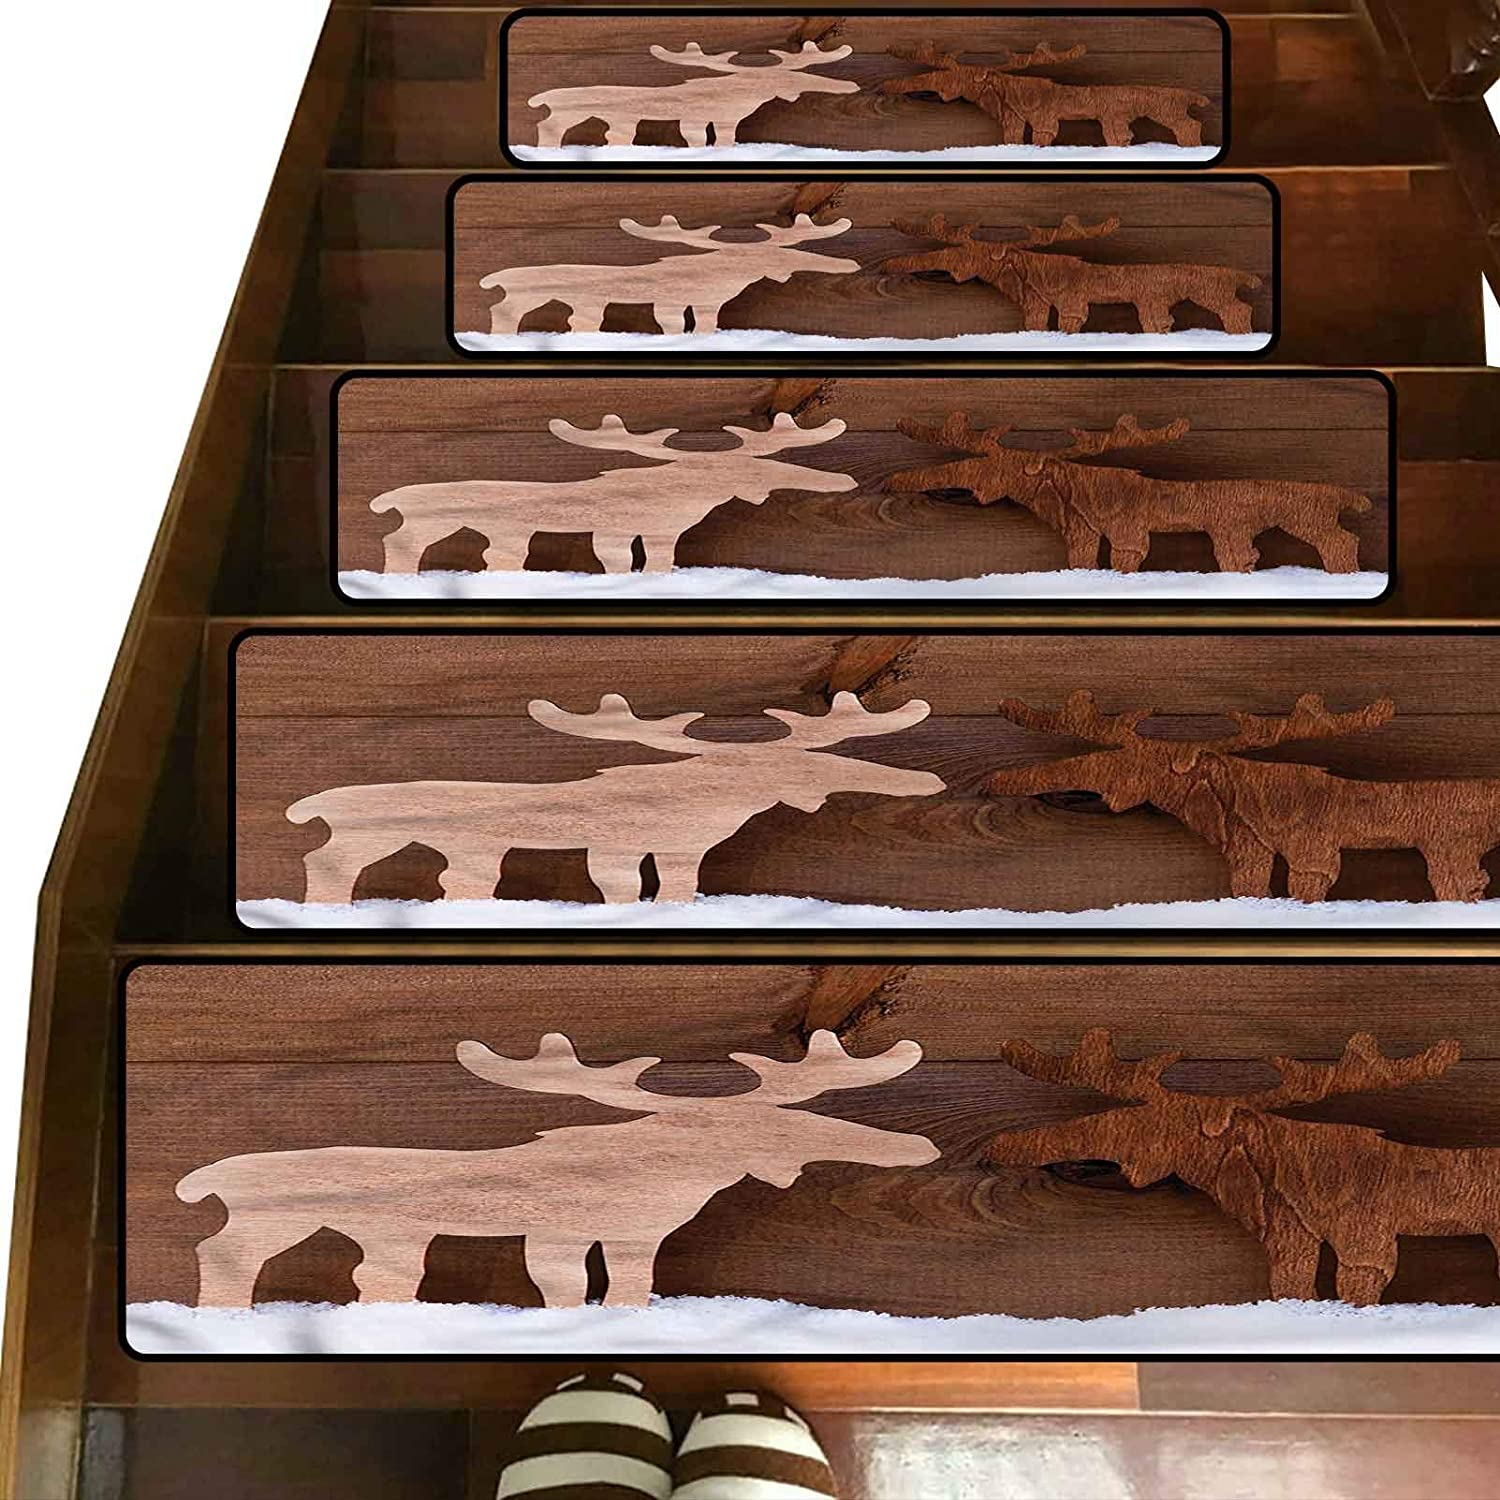 3D Moose Printed Pattern Stair Treads Carpet,(8 x 30 Inches) Pack of 5,Romantic Christmas Season Indoor Outdoor Pet Dog Stair Treads Pads Non-Slip Stairway Carpet Rugs for Home Decor